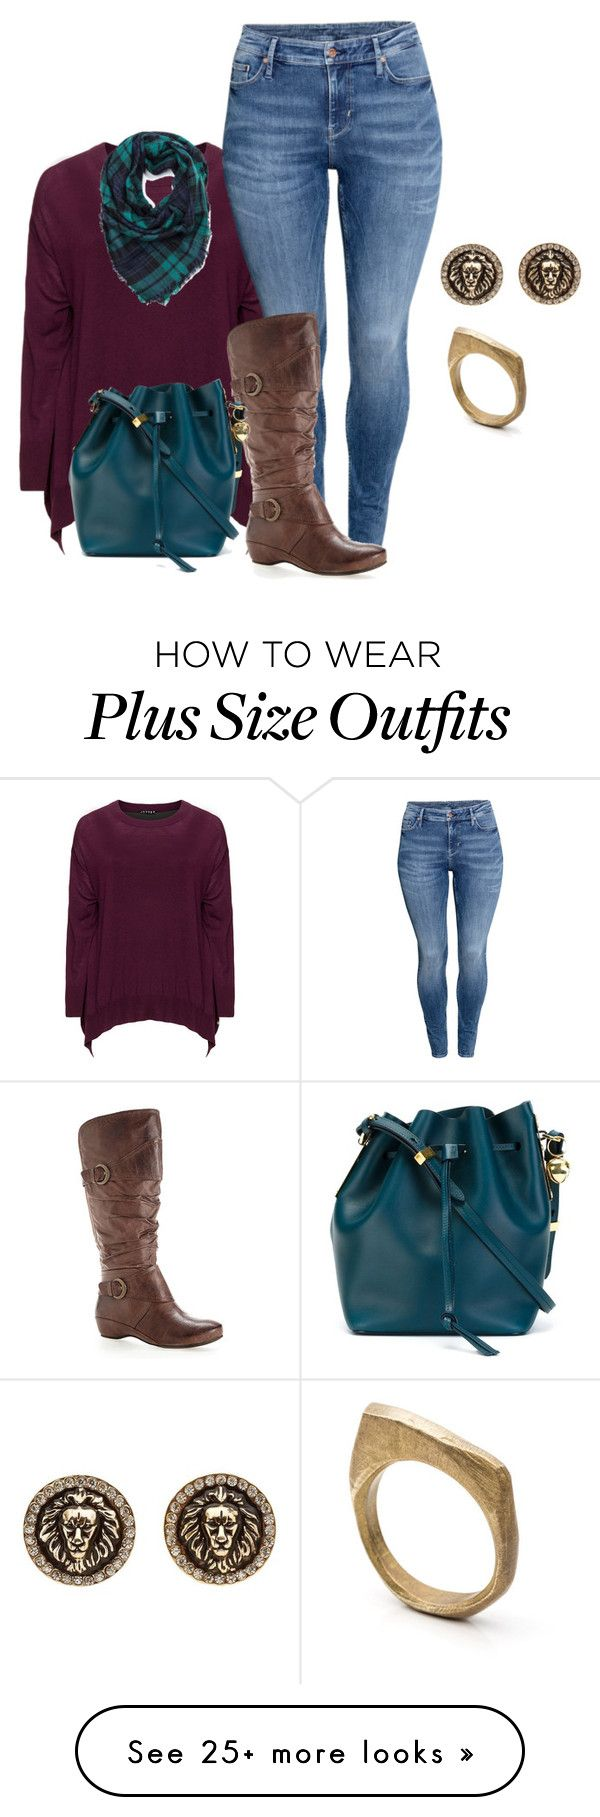 """""""plus size fall/winter boot and sweater style"""" by kristie-payne on Polyvore featuring Jette, H&M, Avenue, Sophie Hulme, Charlotte Russe and by / natalie frigo"""